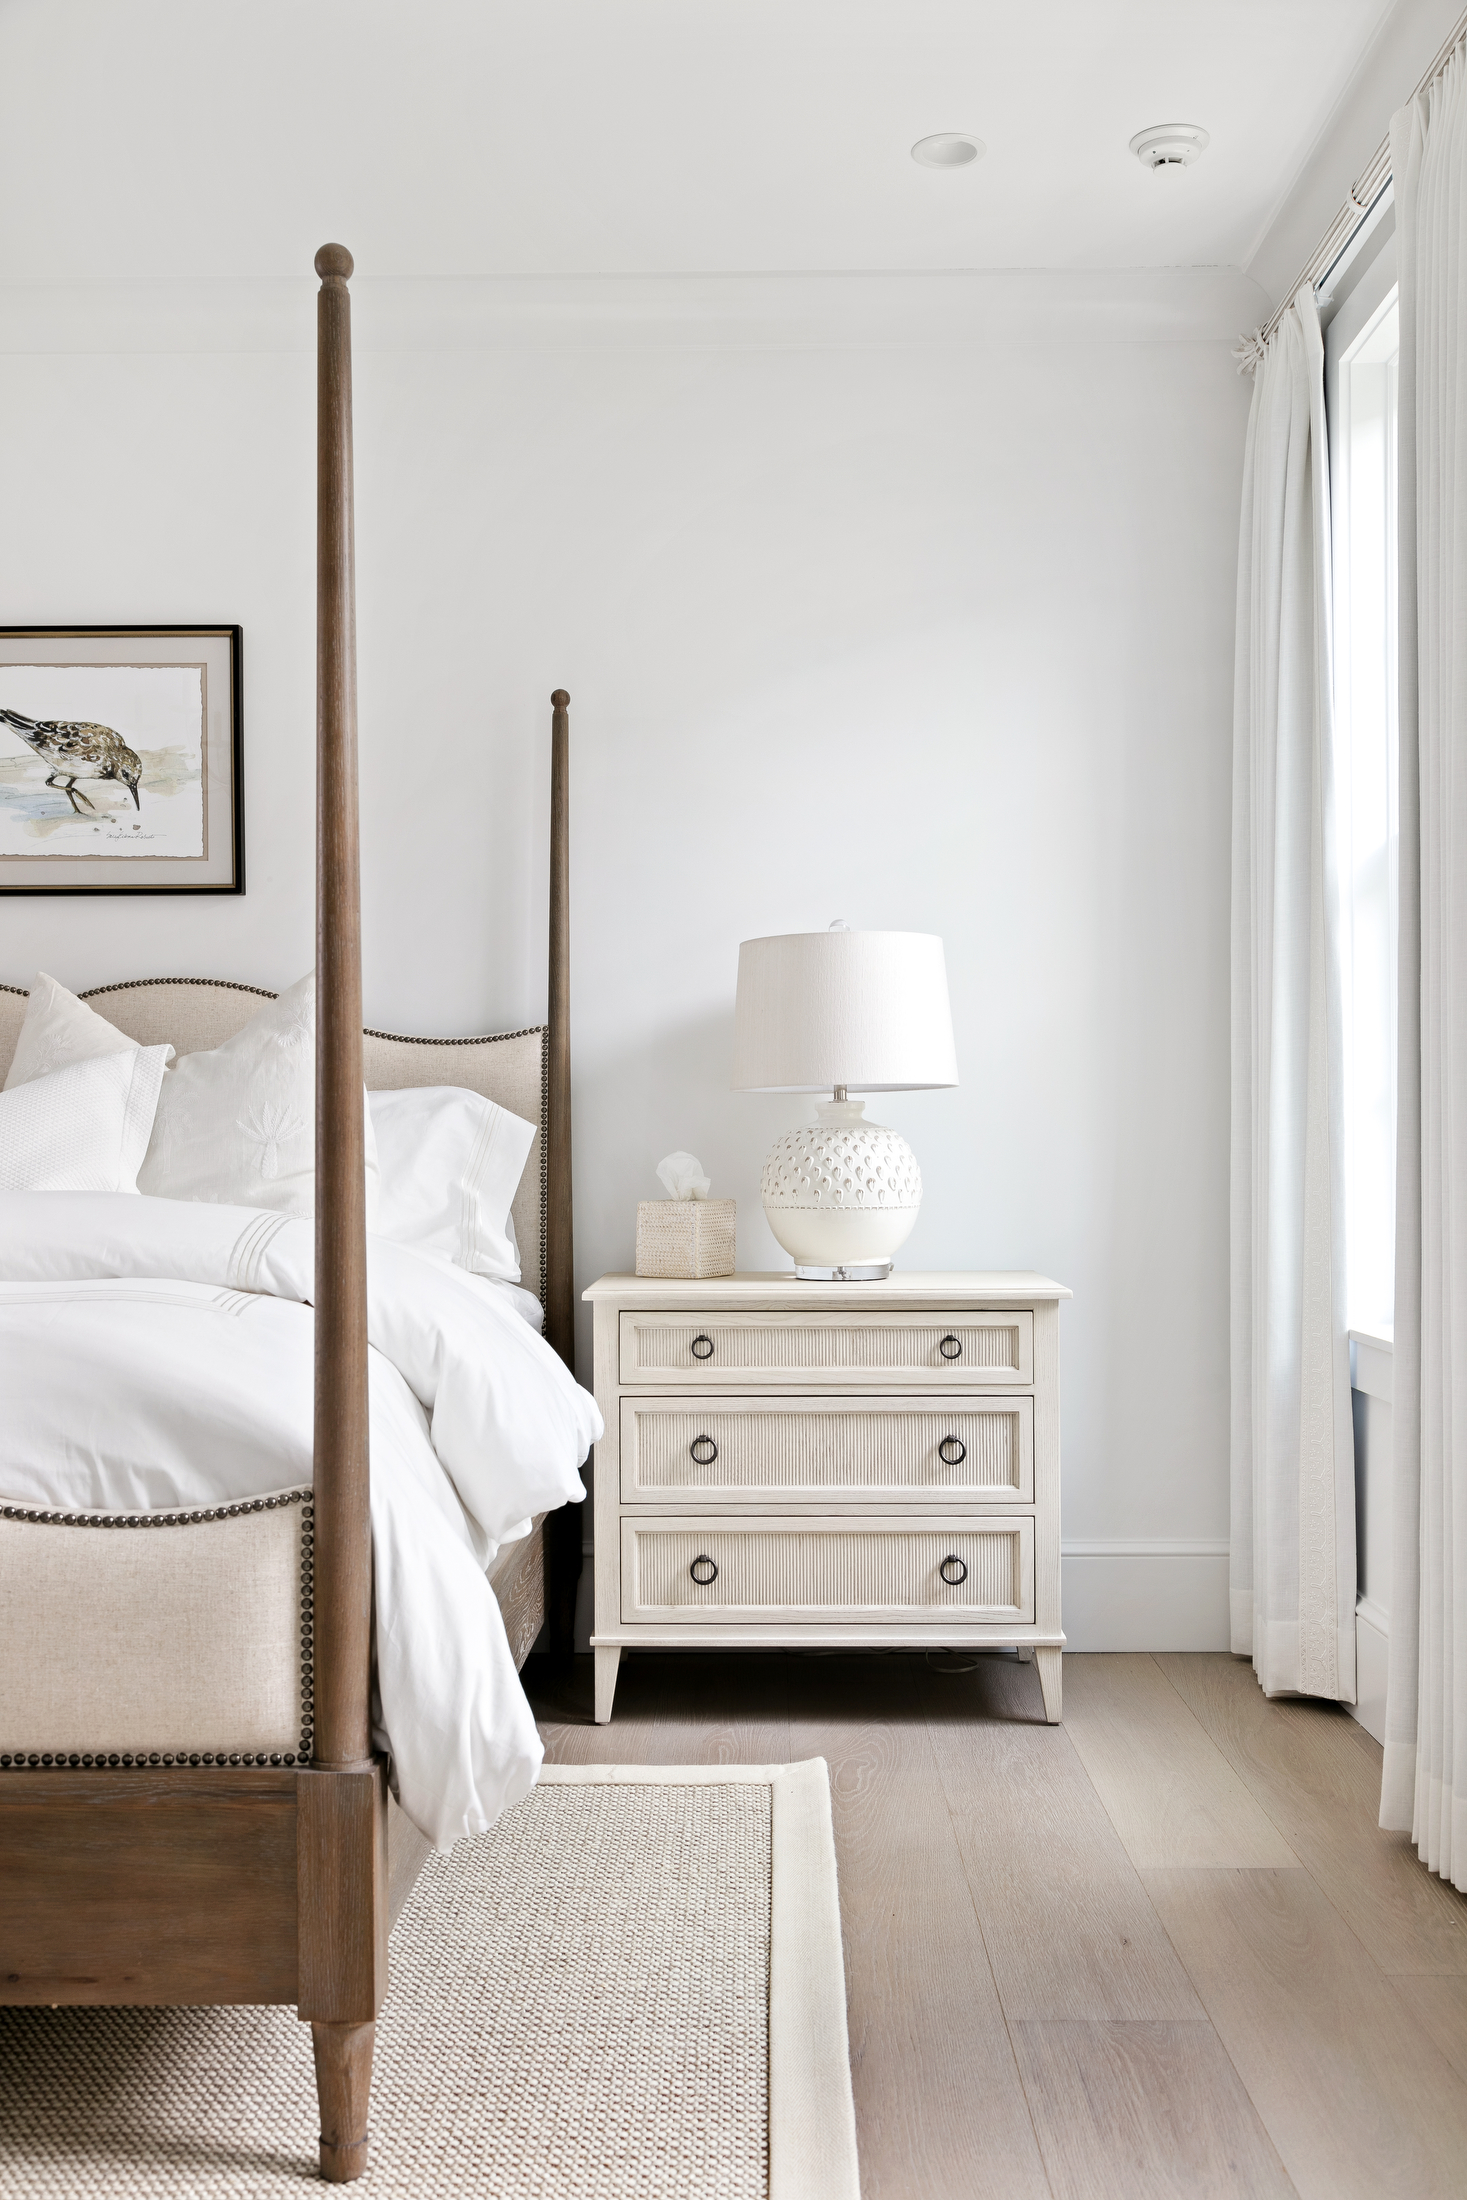 Guest bedroom in white and beige